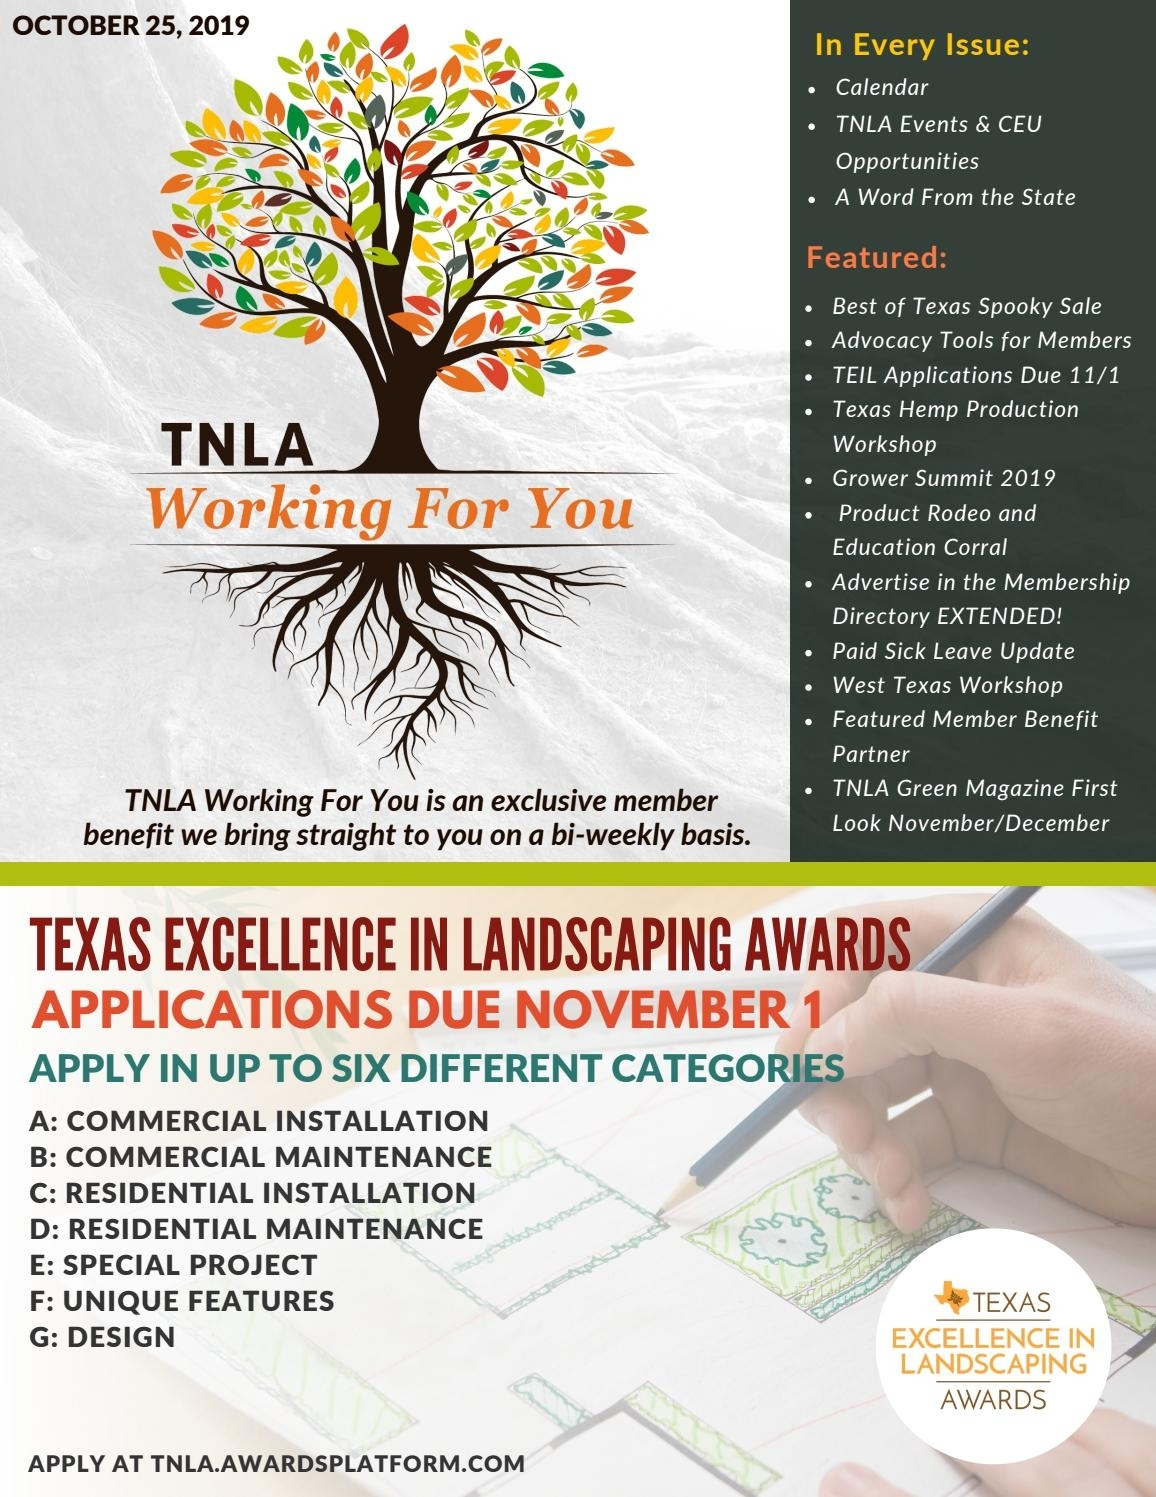 Tnla Working For You October 25, 2019Texas Nursery intended for Stephen F Austin 2020-2021 Calendar